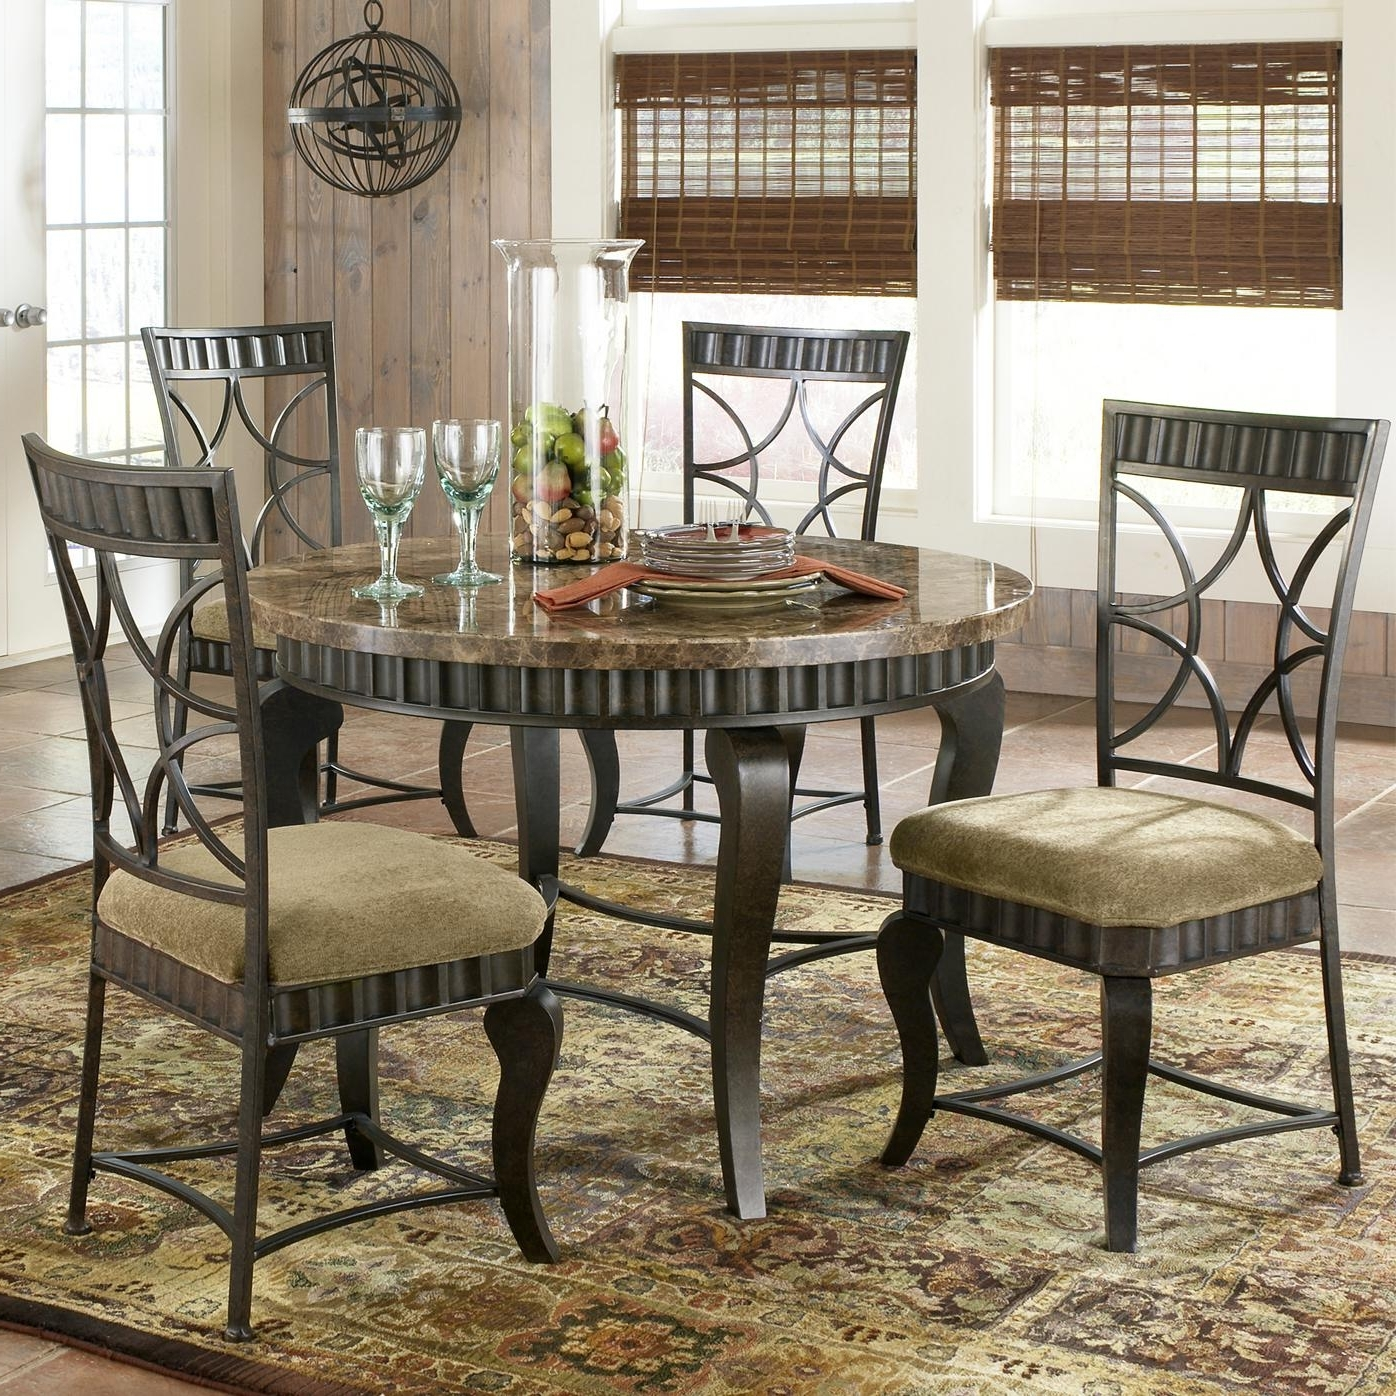 Preferred Steve Silver Hamlyn 5 Piece Faux Marble Top Dining Table Set Regarding Marble Dining Tables Sets (Gallery 13 of 25)